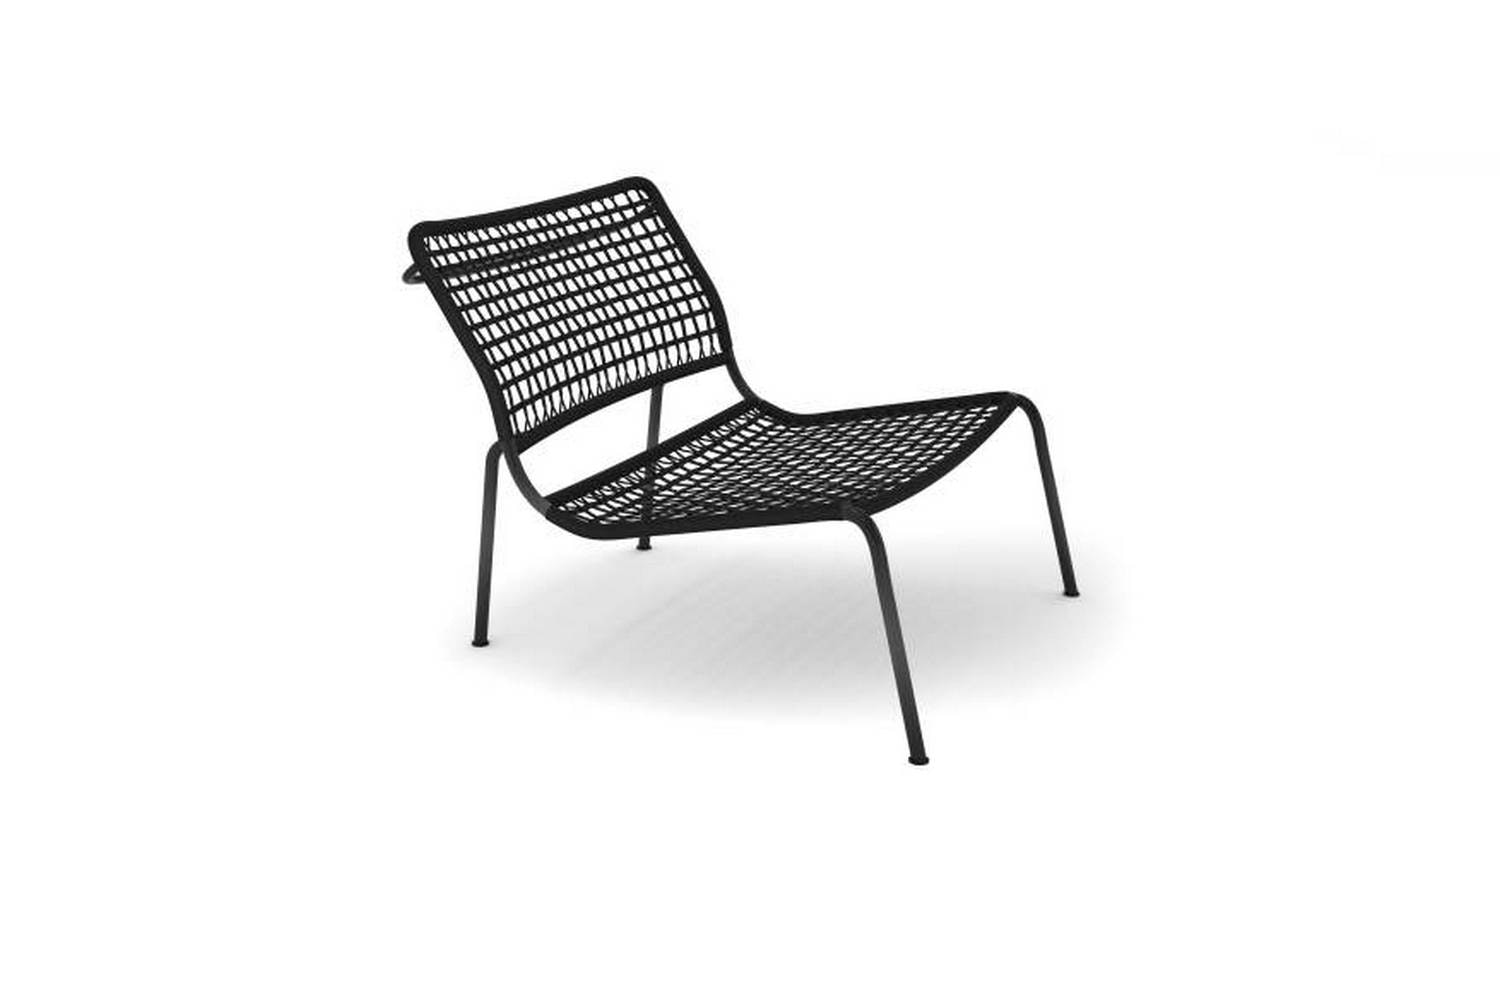 Carbon Frog Armchair by Piero Lissoni for Living Divani